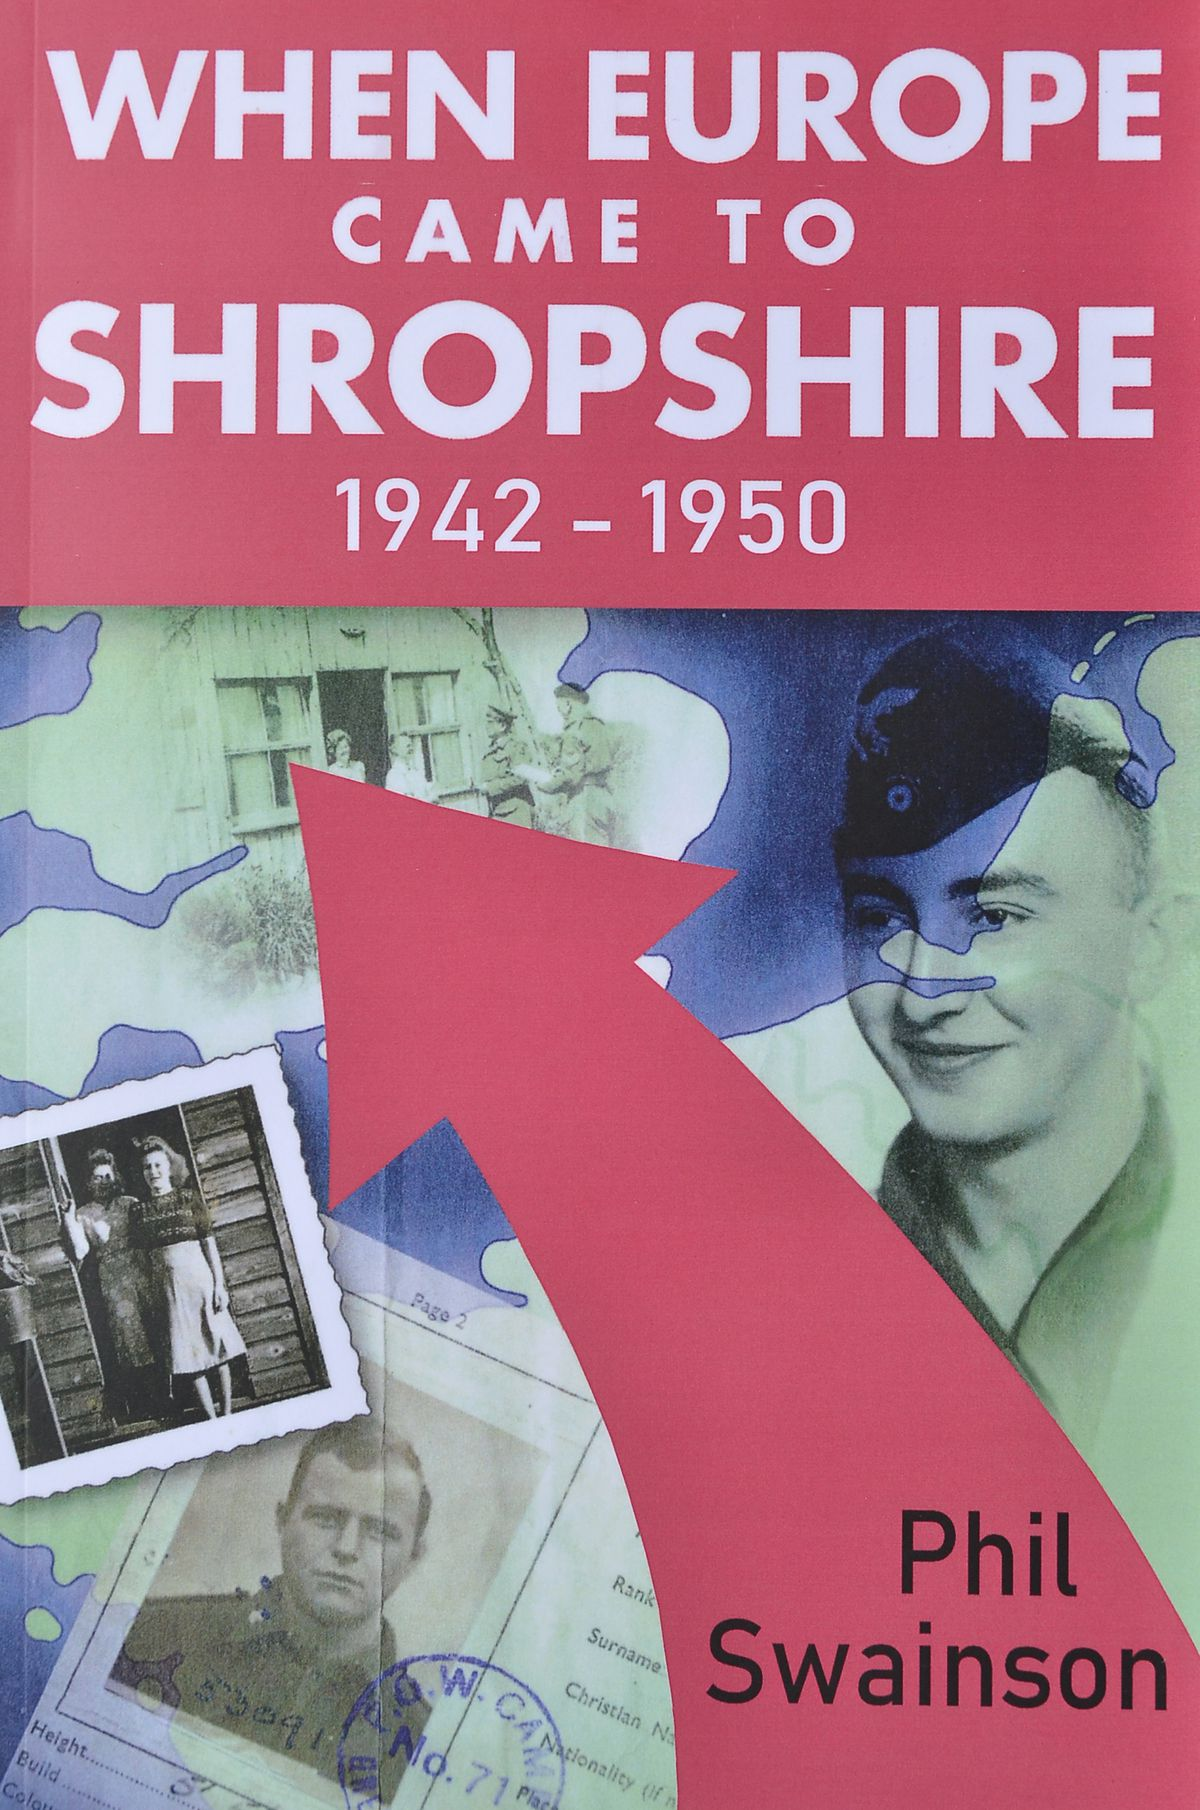 When Europe Came To Shropshire